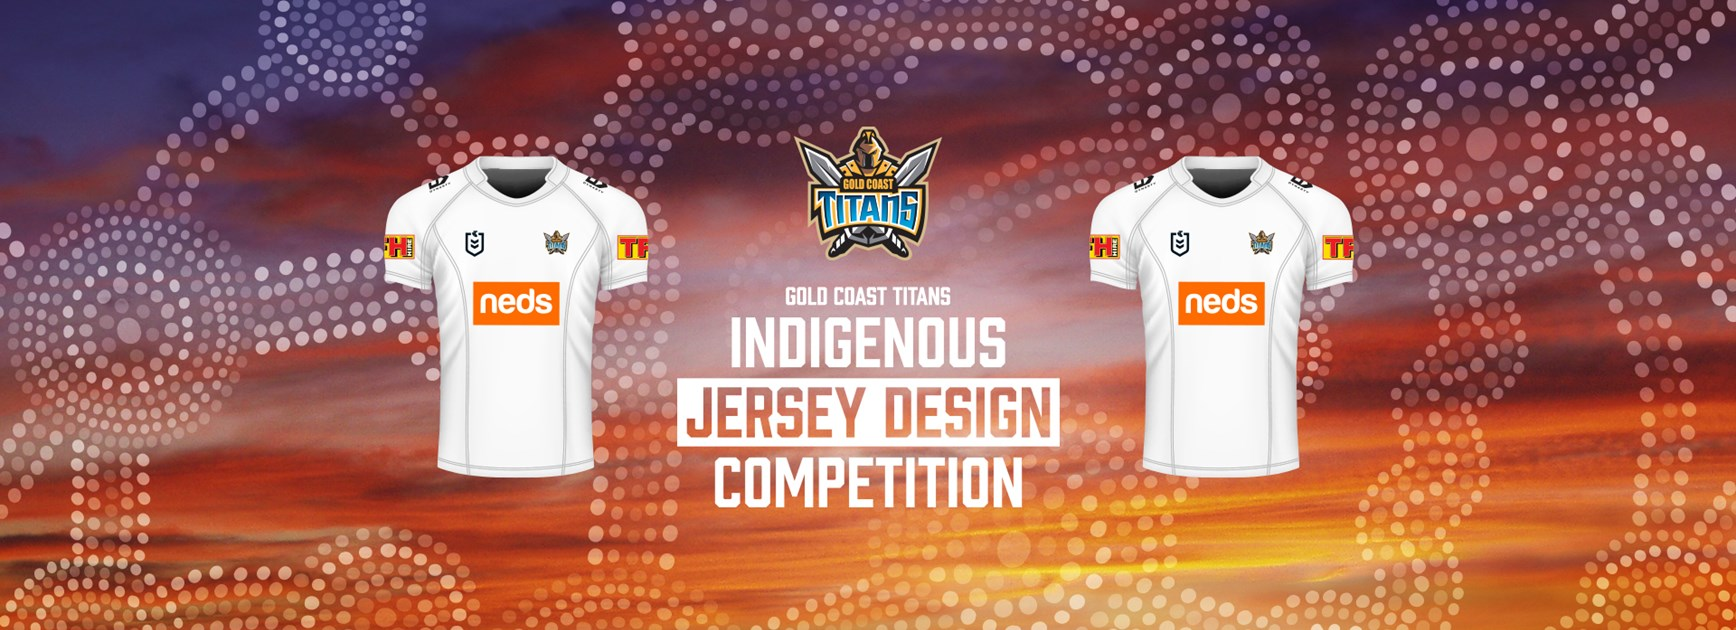 COMPETITION: 2019 Indigenous Jersey Design Competition